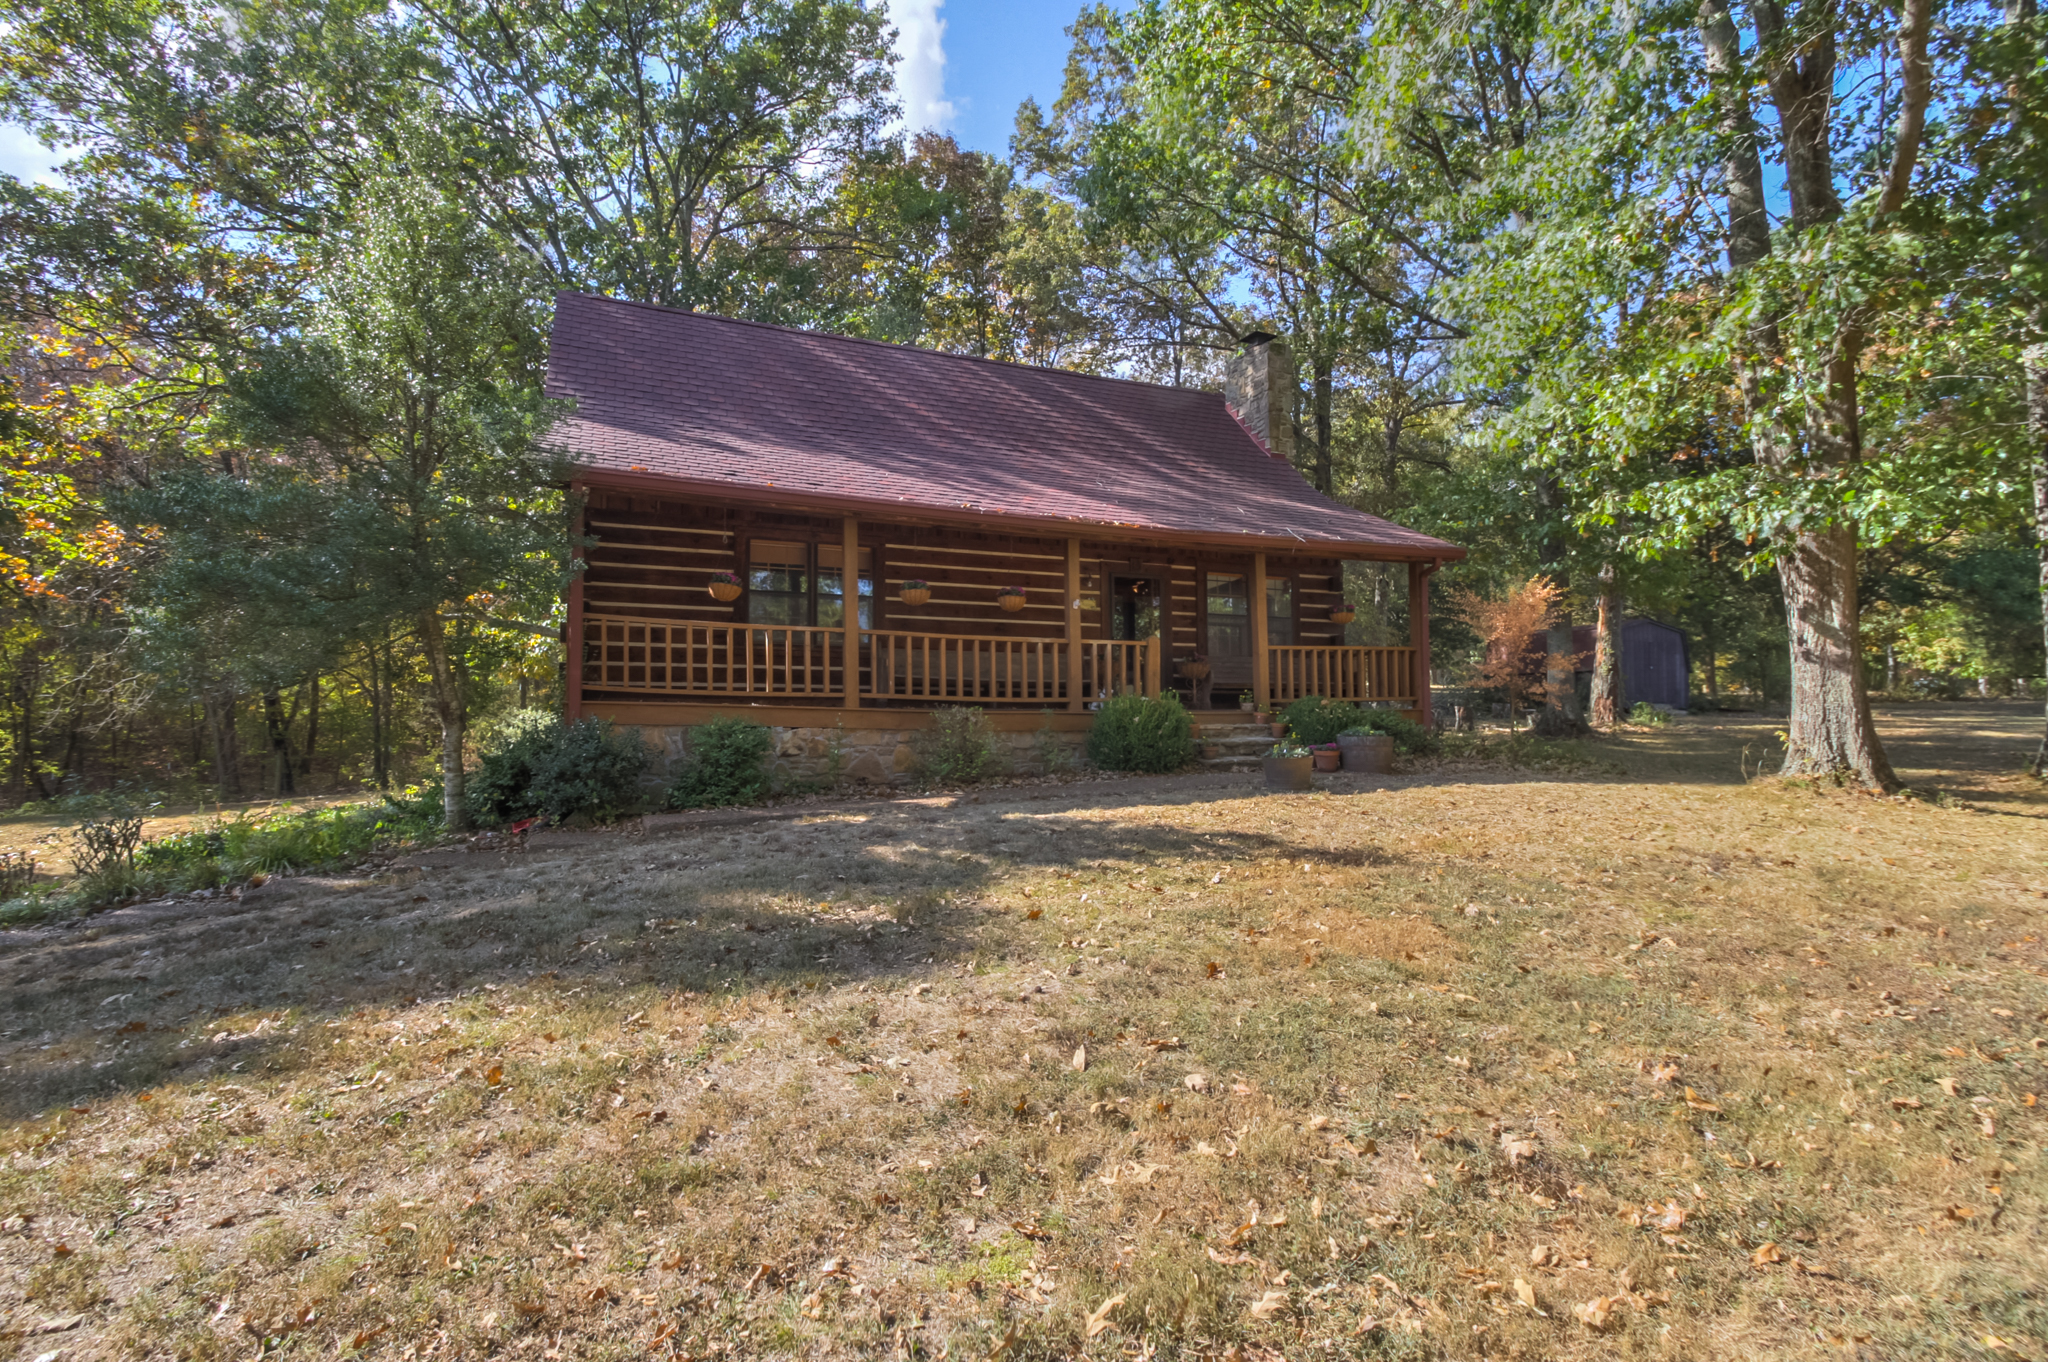 Single Family Home for Sale at Quaint and Charming Franklin Home 4379-83 Arno Road Franklin, Tennessee, 37064 United States